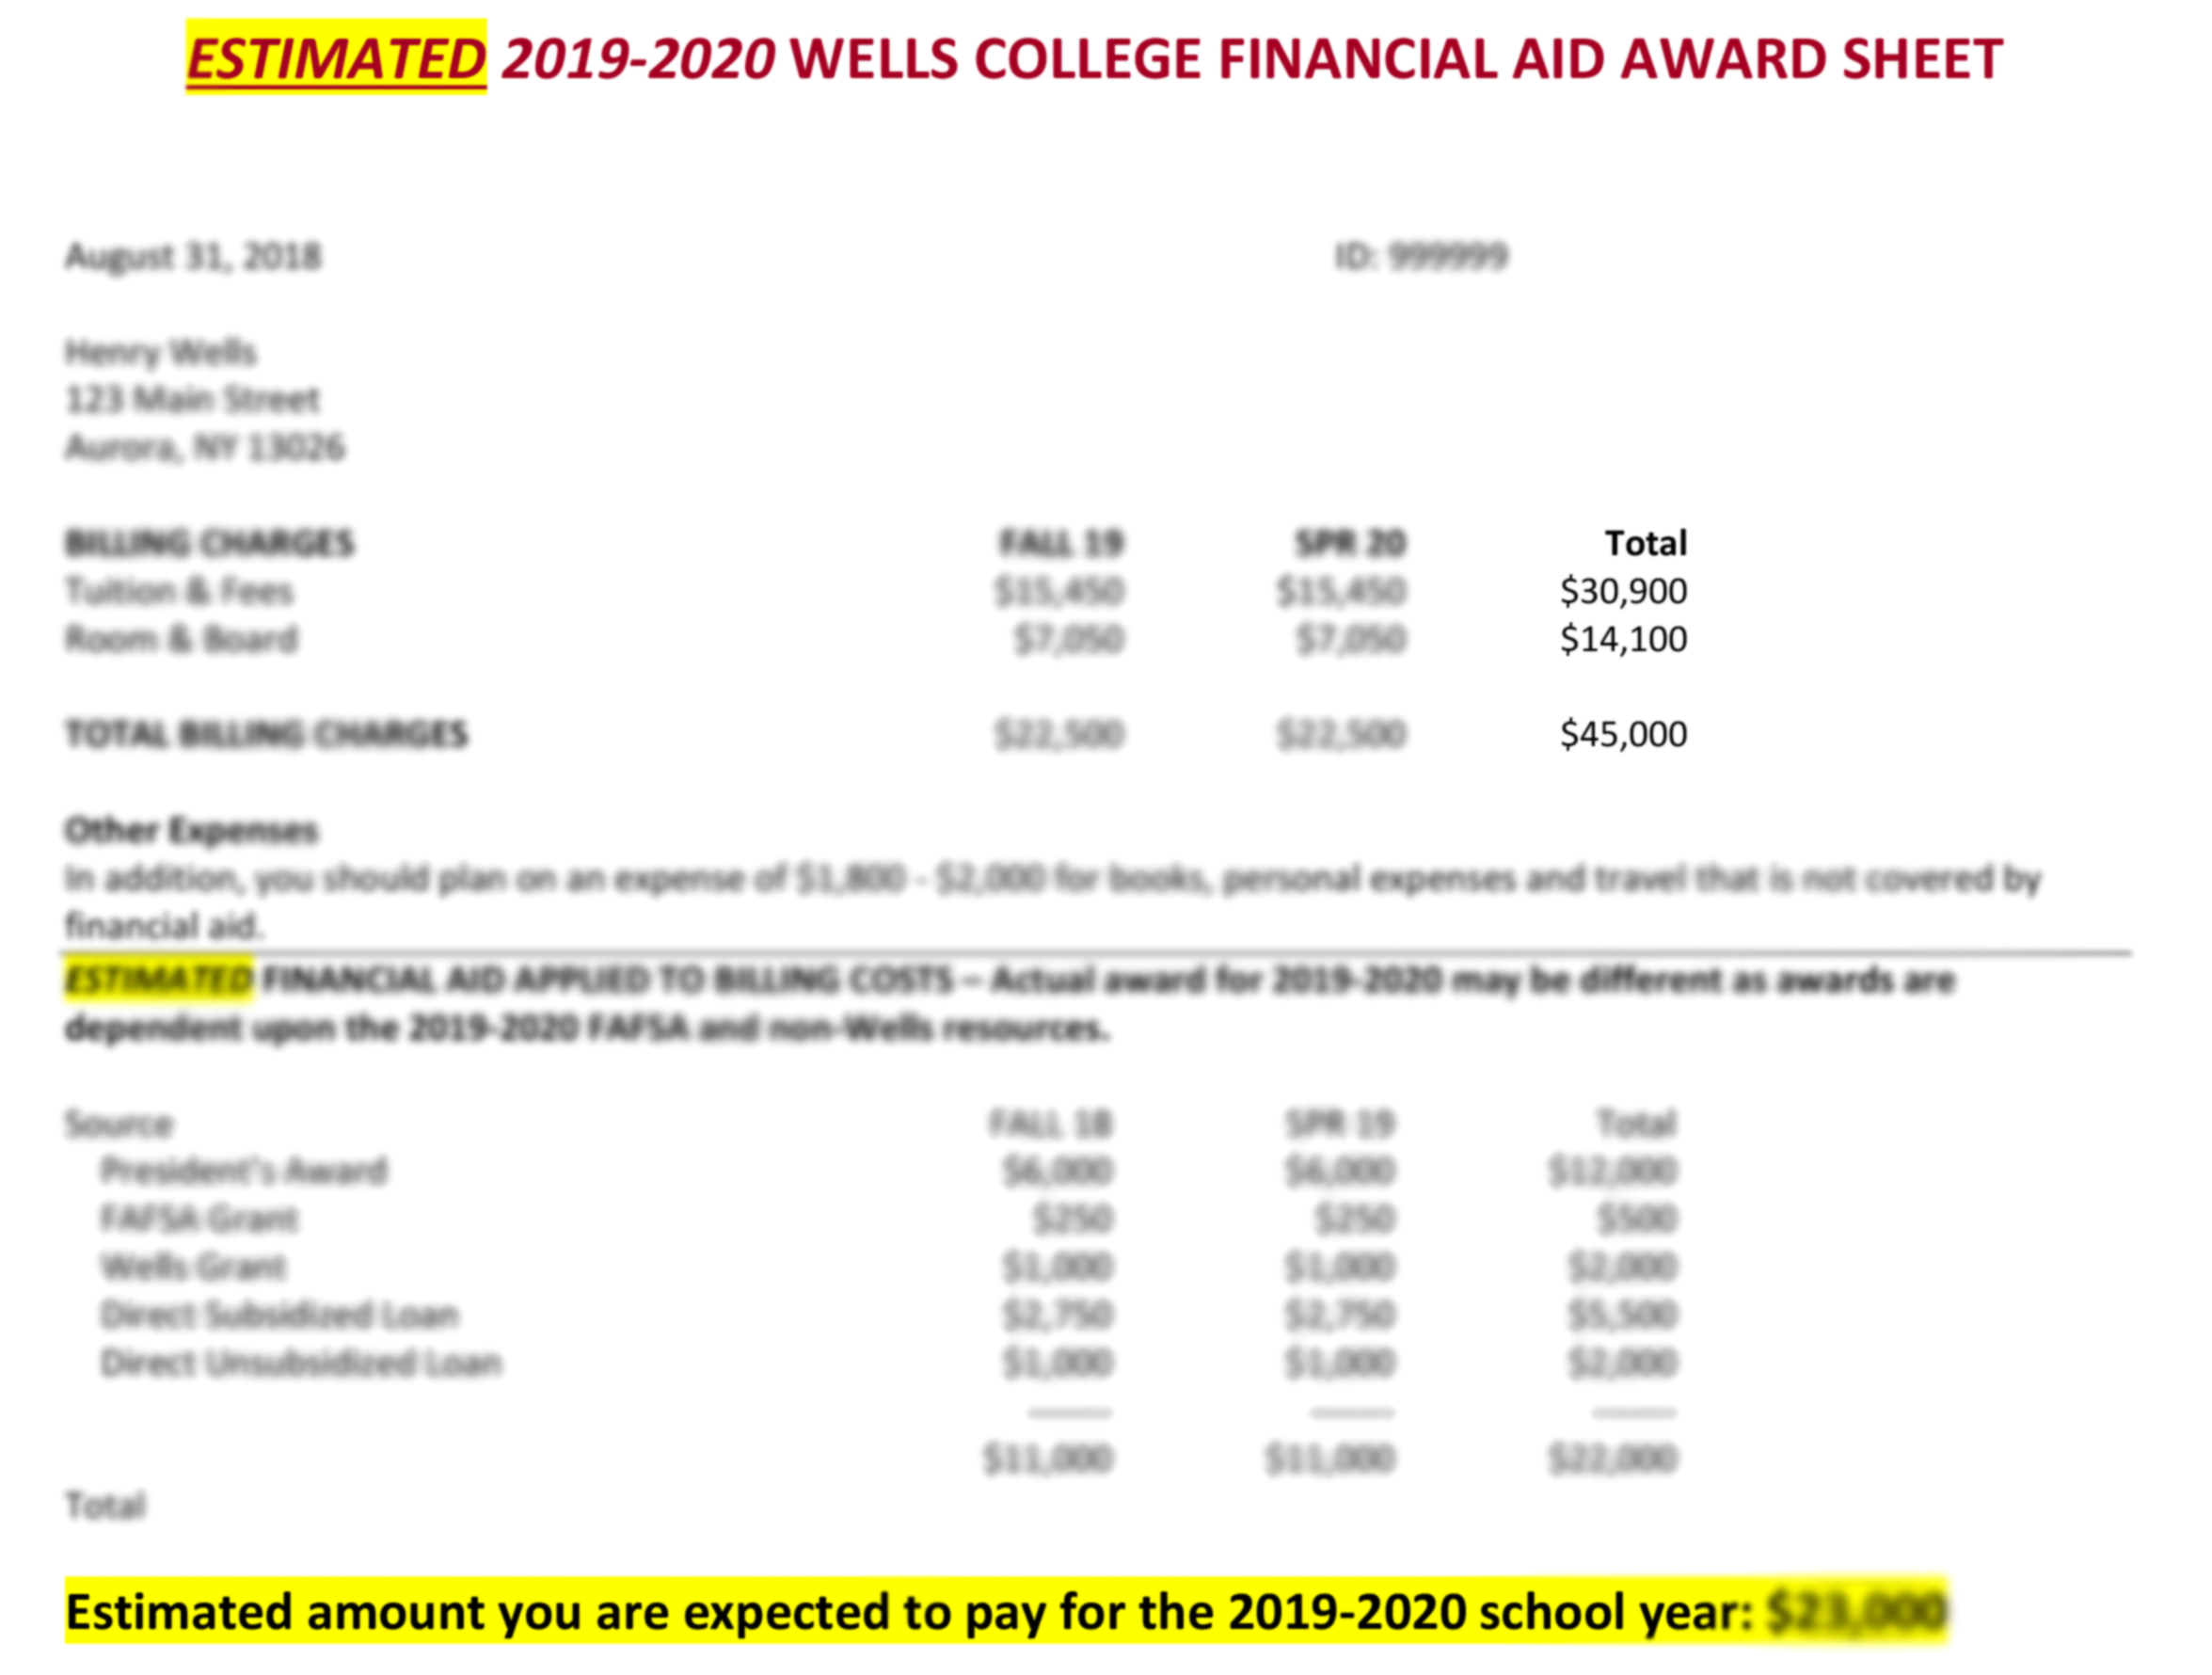 How to View Your Estimated Financial Aid Award Sheet